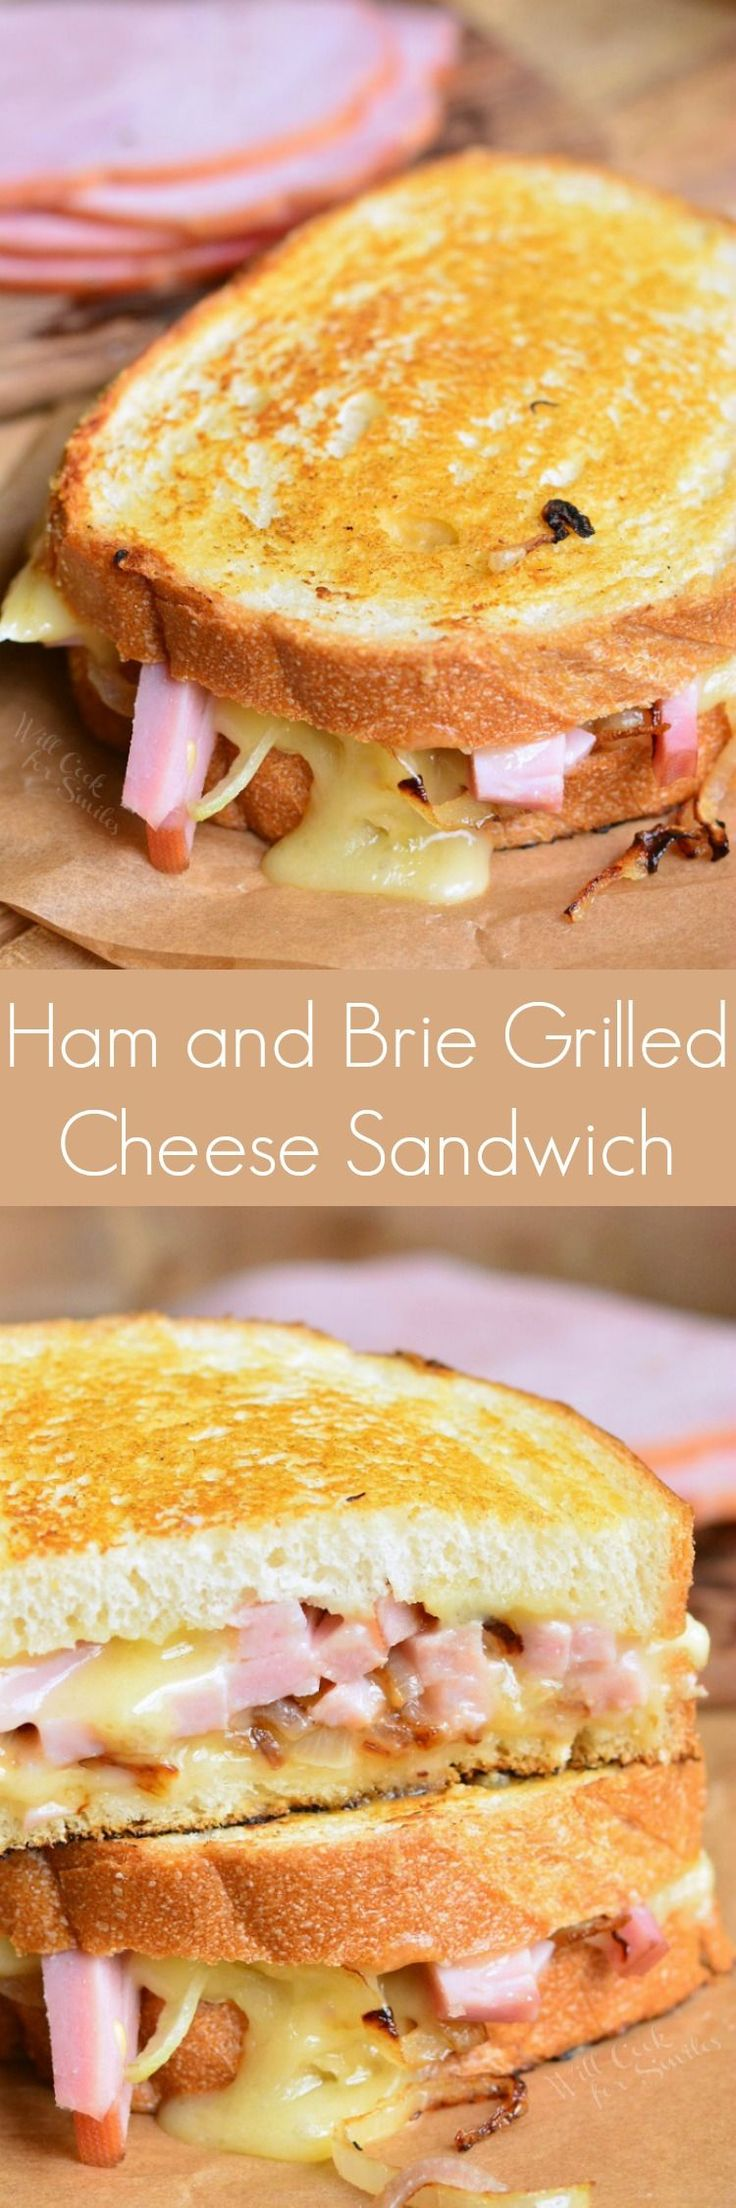 Ham and Brie Grilled Cheese Sandwich ~ grilled cheese sandwich made with ham, brie cheese, sauteed onions, and some maple mustard glaze! #leftoverham #grilledcheese